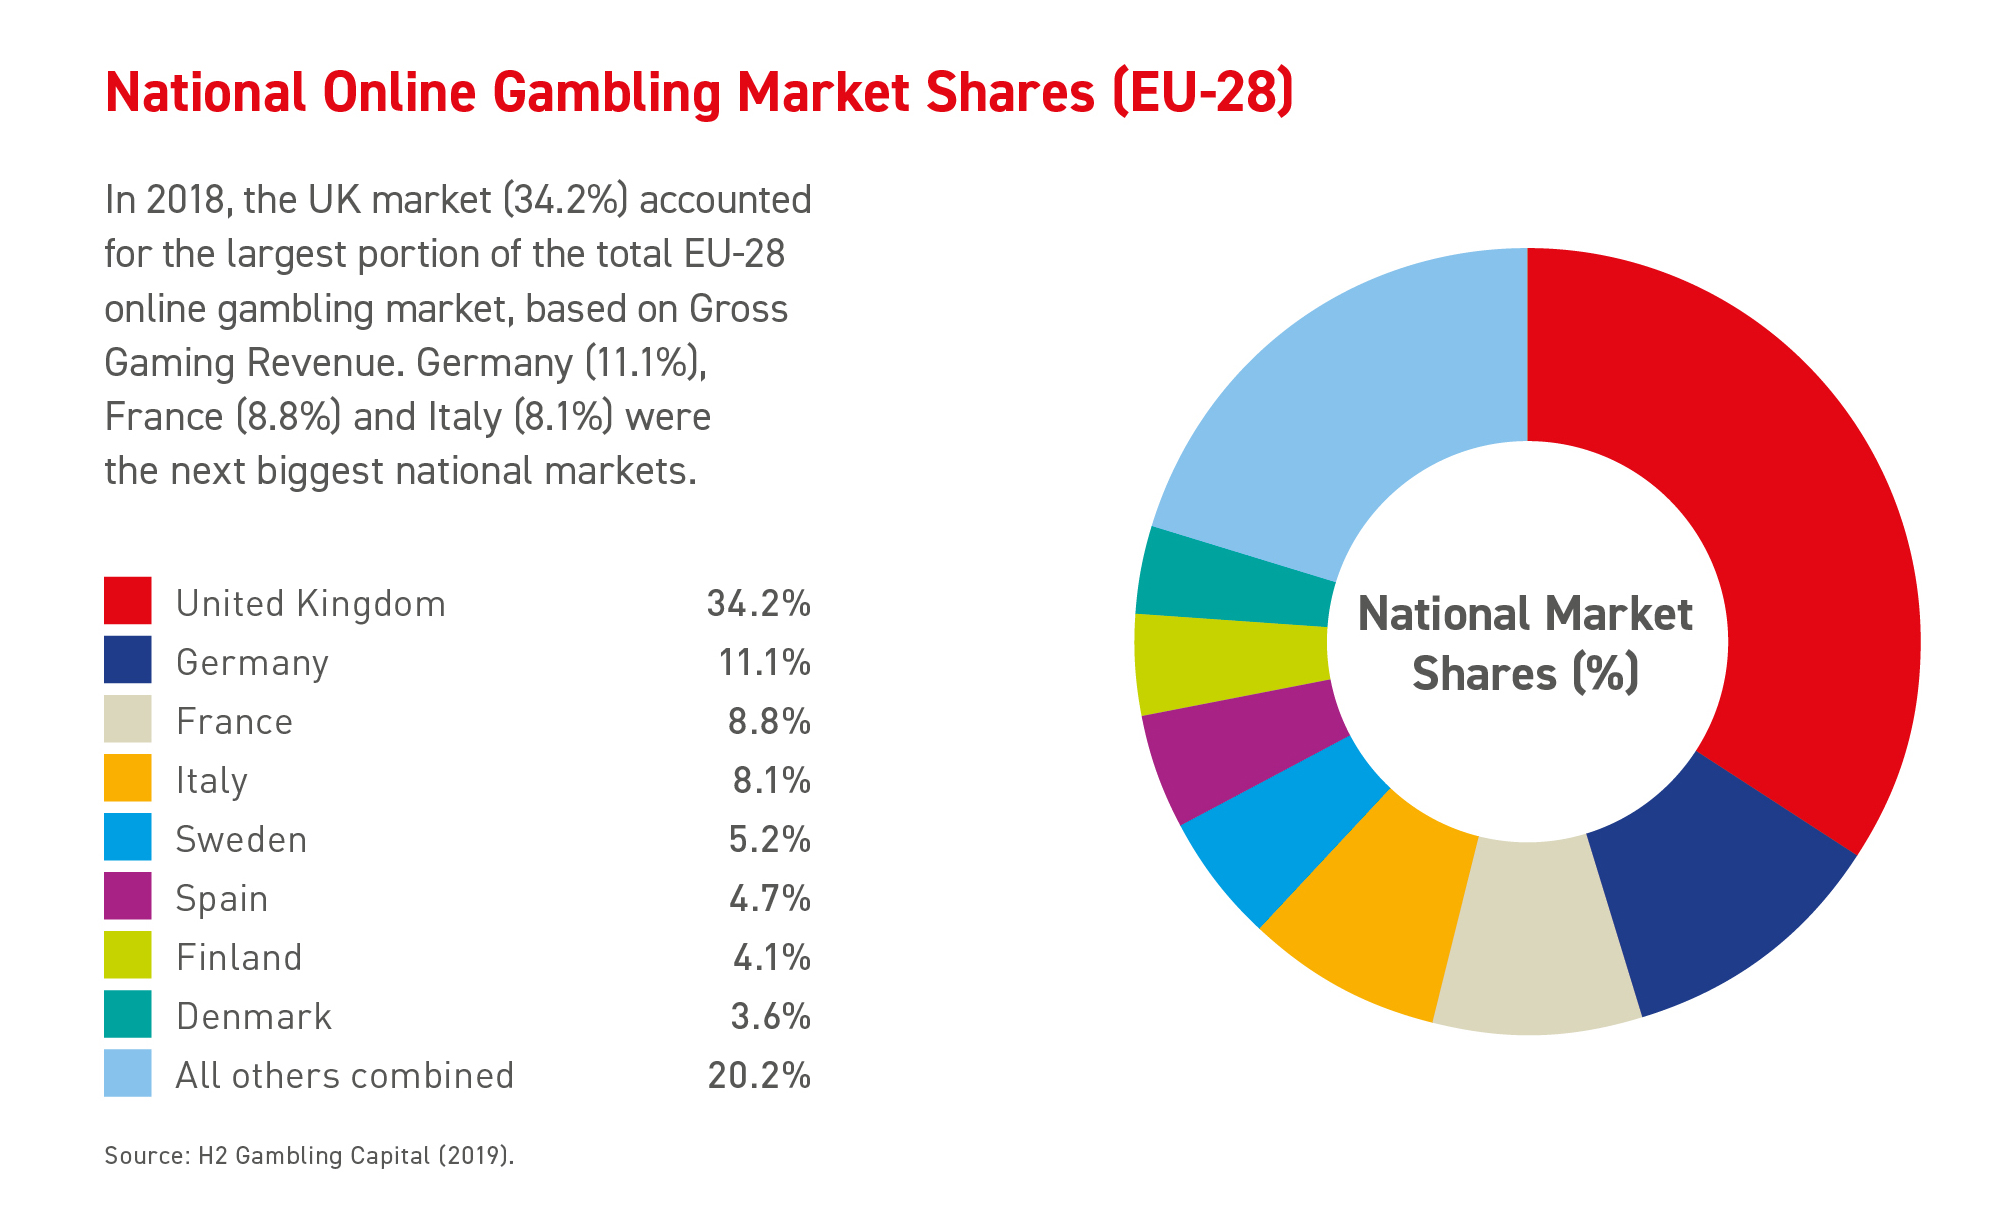 National Online Gambling Market Shares (2018) (EU-28)